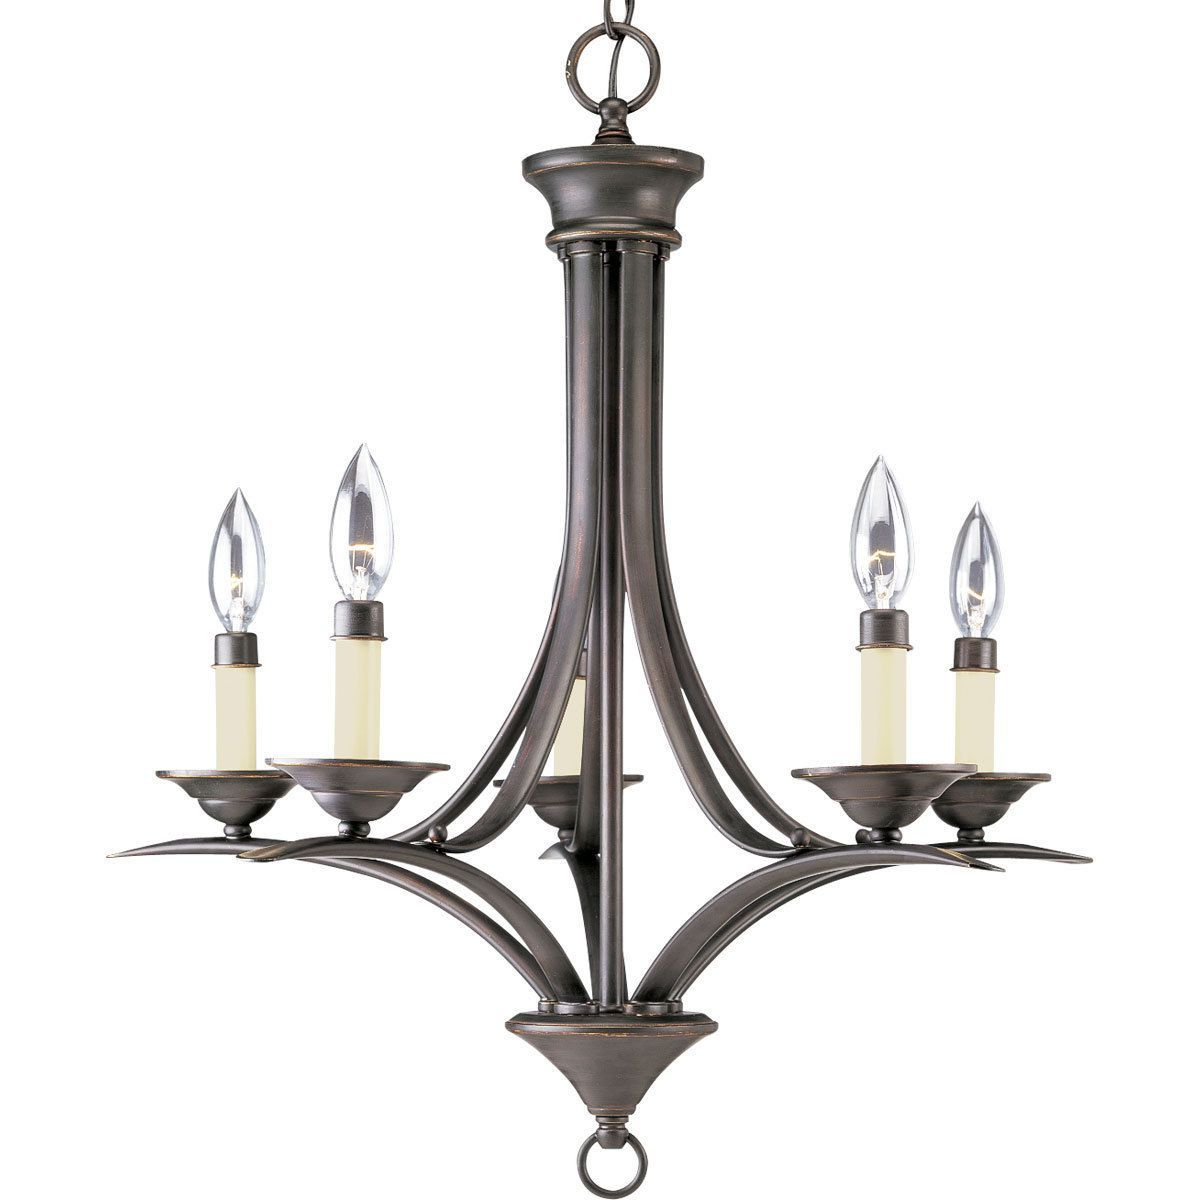 Most Current Progress Lighting 5 Light Chandelier Lighting Fixture – N/a Intended For Kenedy 9 Light Candle Style Chandeliers (View 11 of 20)